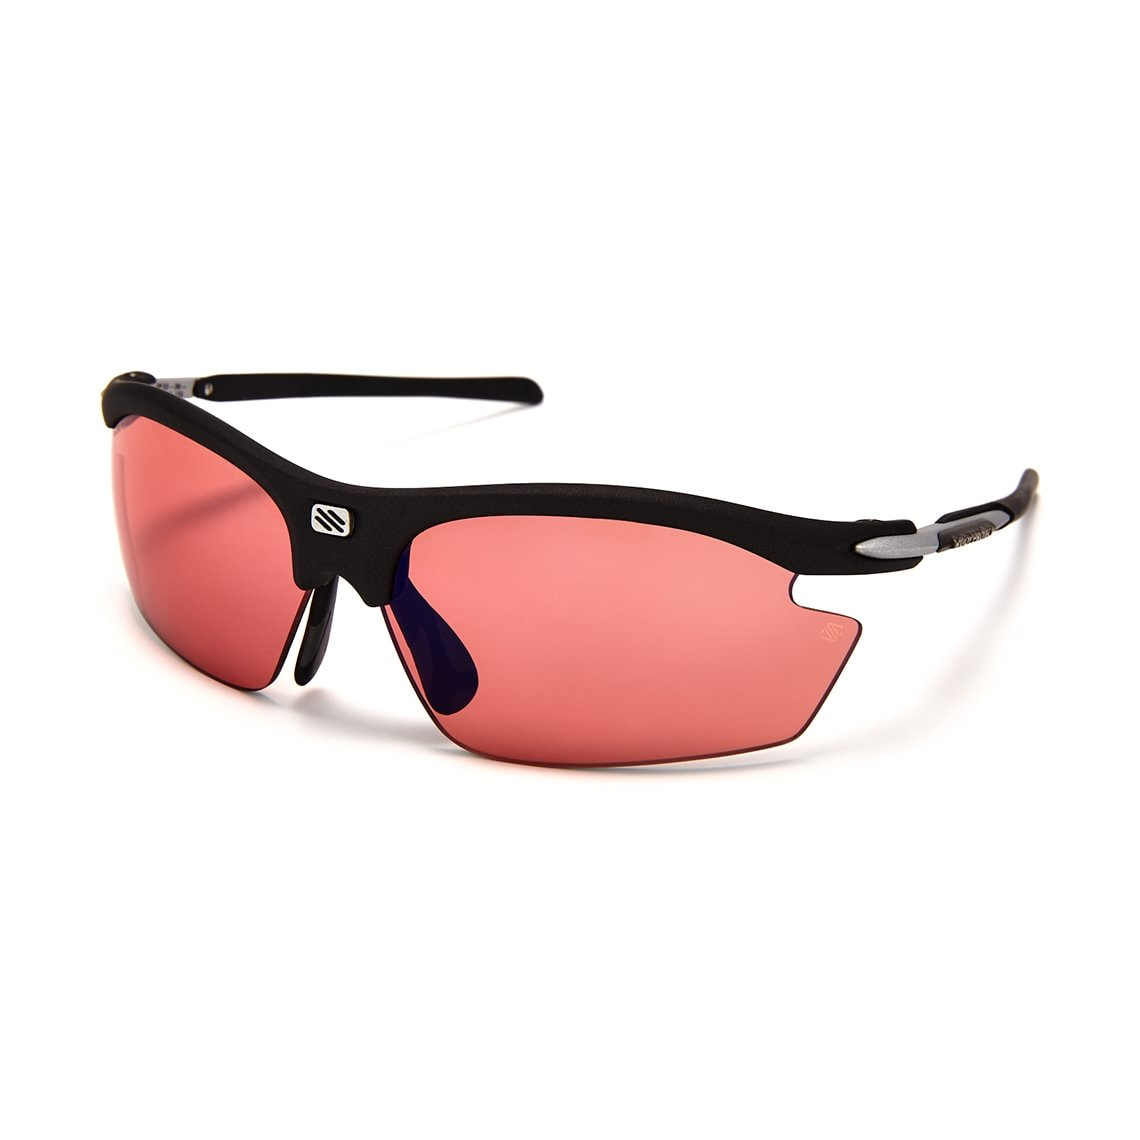 Rudy Project Rydon Matte Black Racing Red SP530306-0000